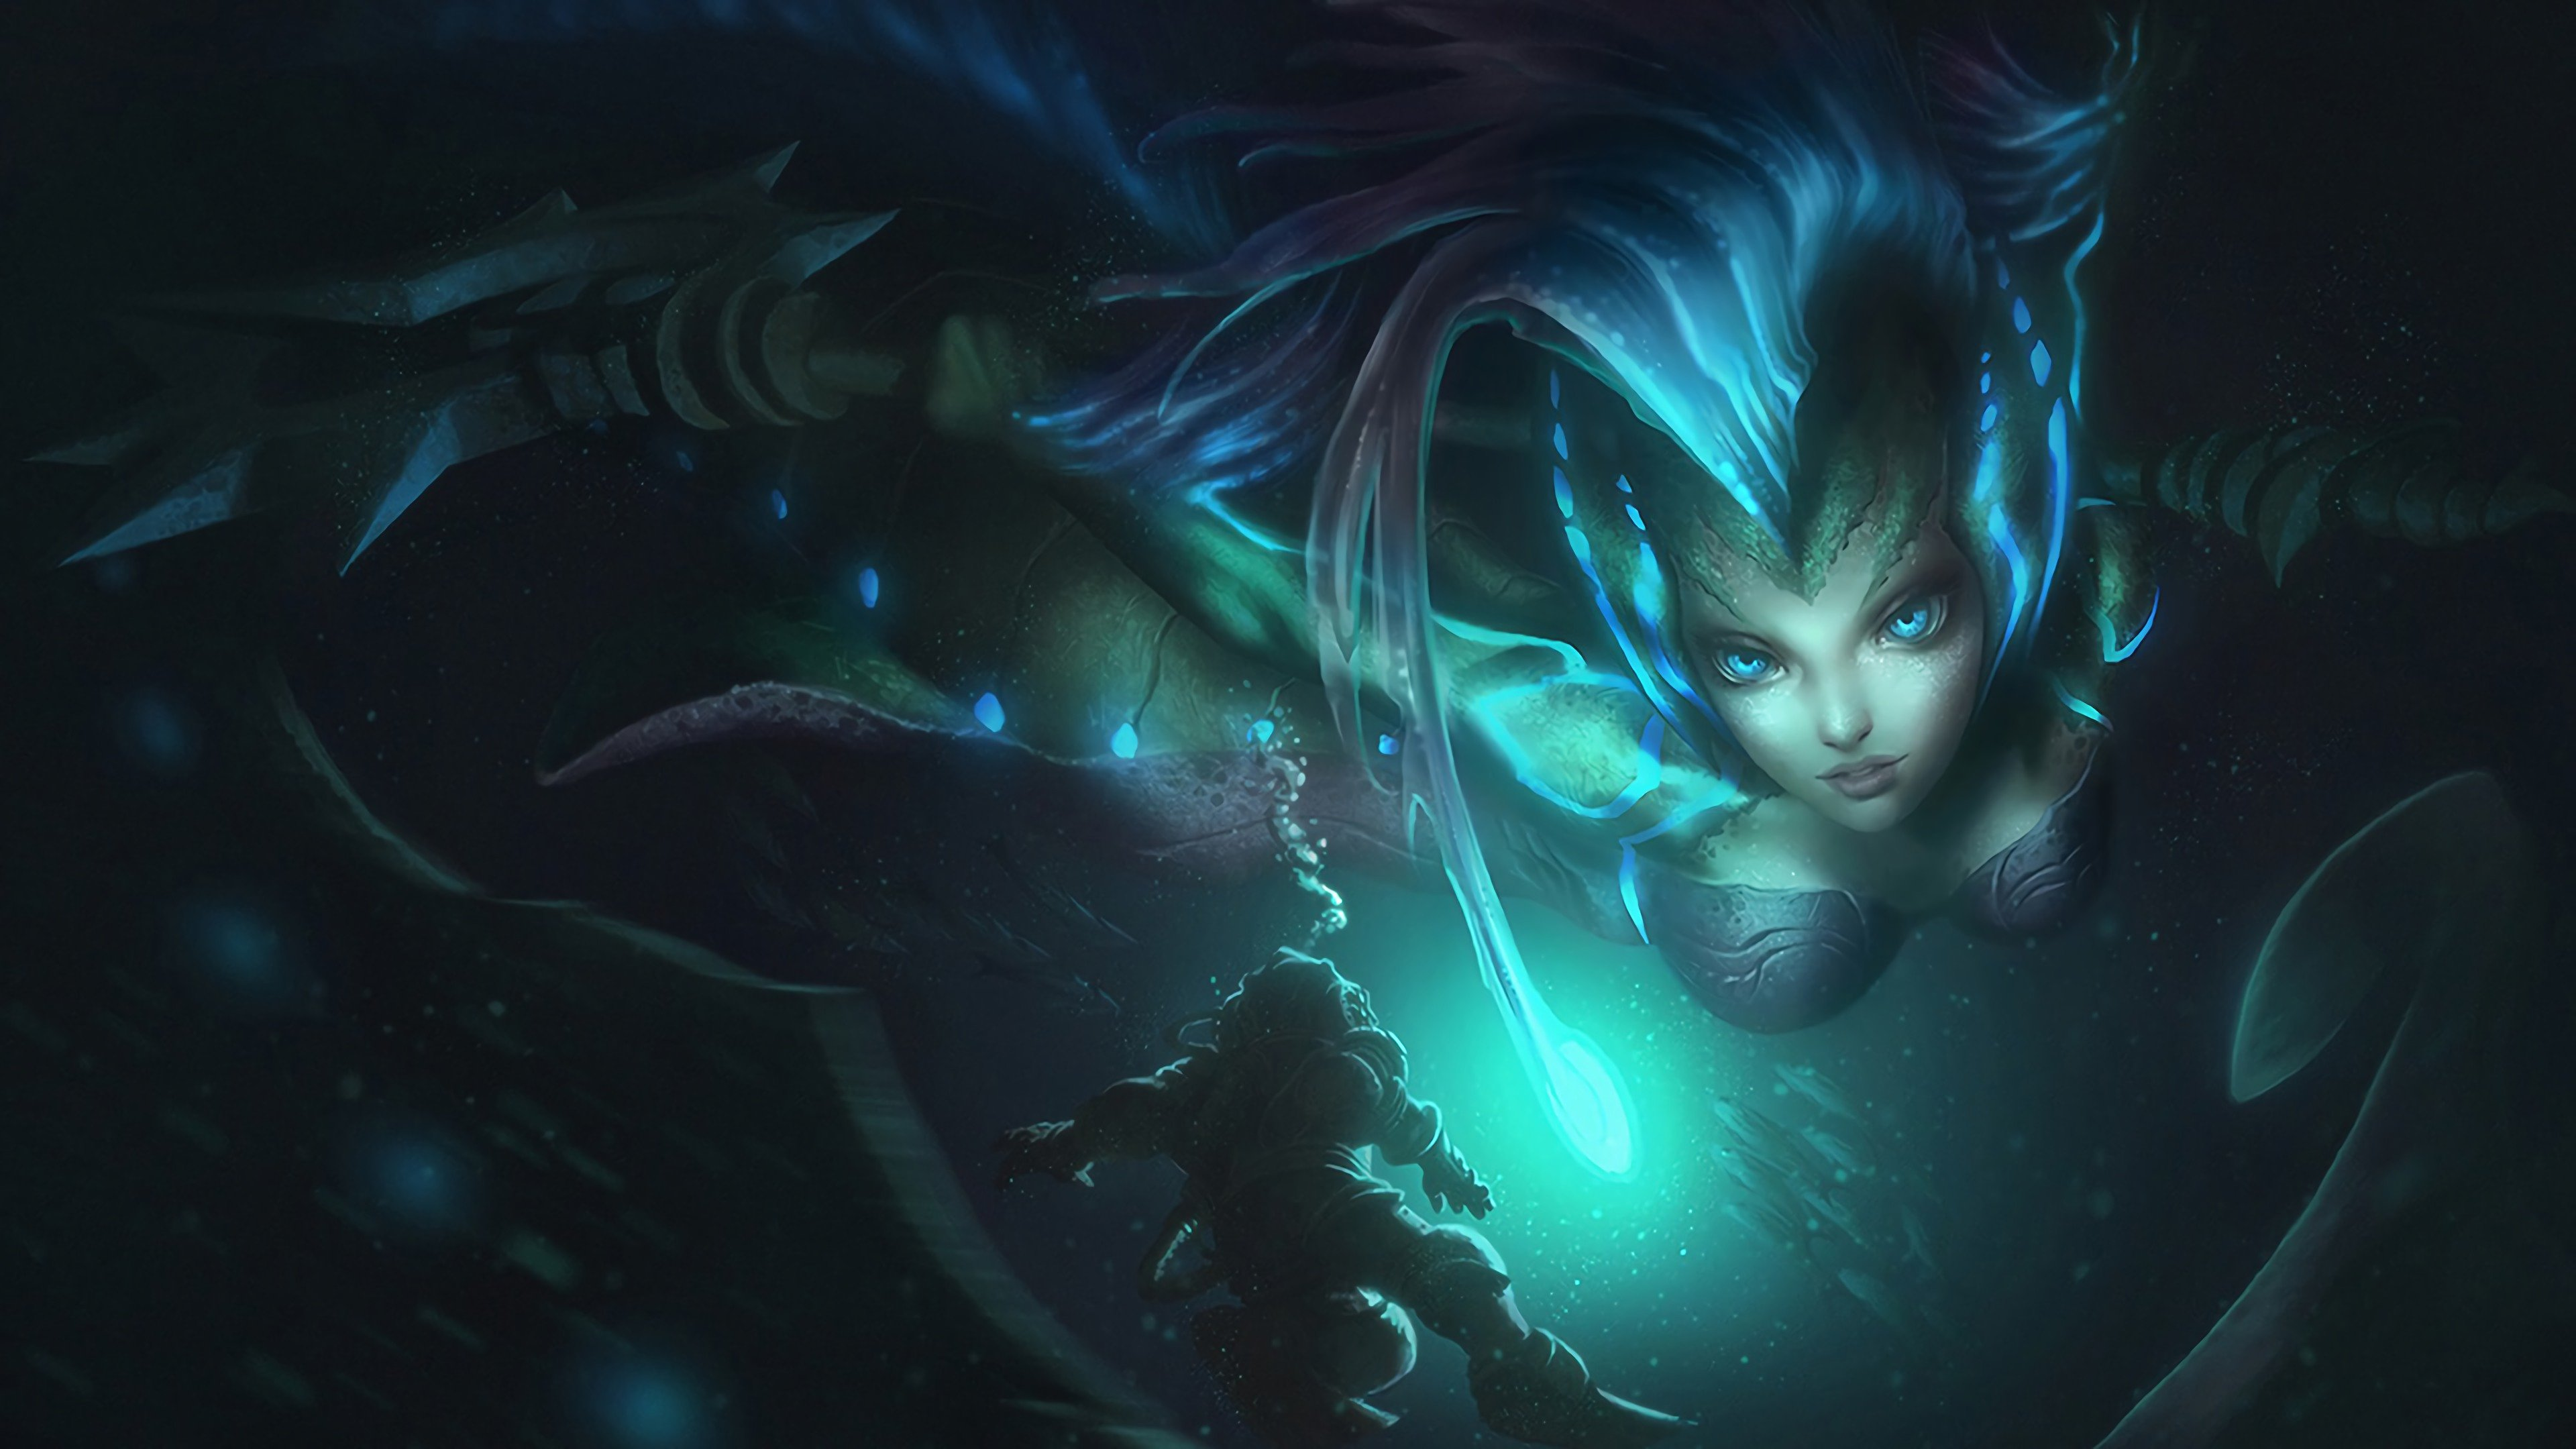 High Resolution Nami Uhd 4k Wallpaper Id Nami Wallpaper League Of Legends 3293160 Hd Wallpaper Backgrounds Download